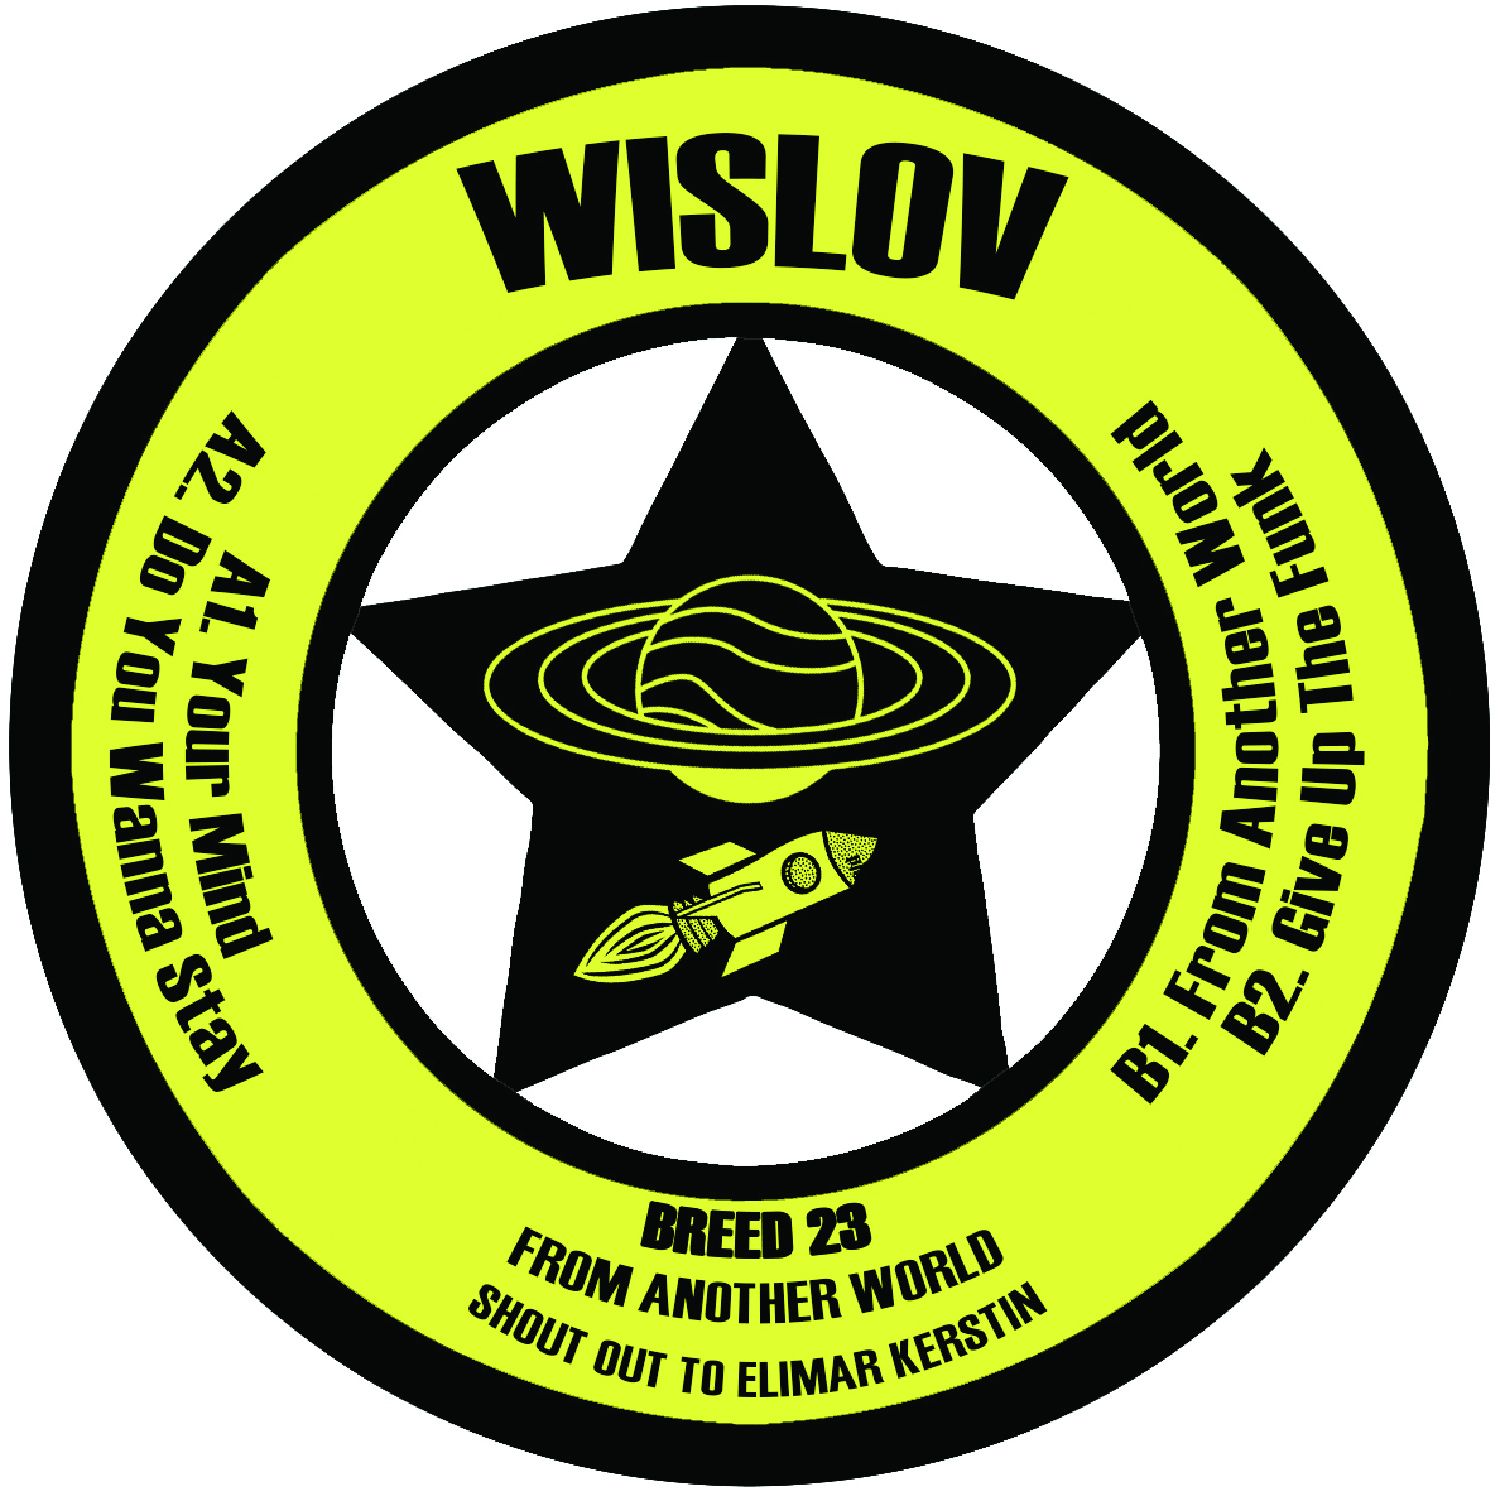 "[BREED023] Wislov - From Another World EP (12"" Vinyl + Digital)"